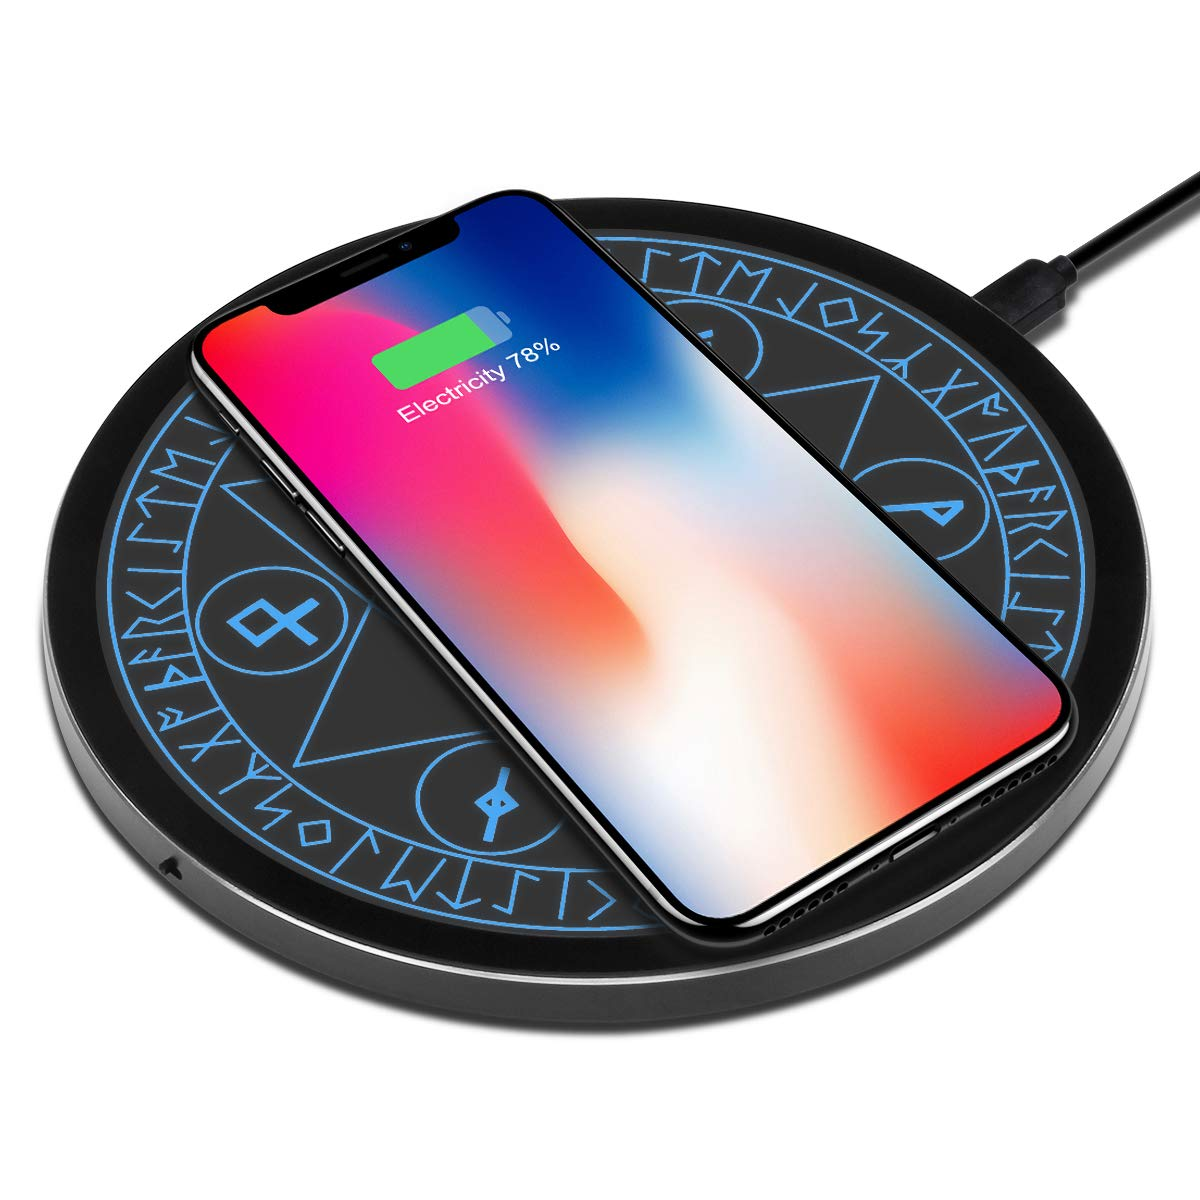 Wireless Charger Qi 10W Wireless Charging Pad, 7.5W Compatible with iPhone 11/Pro/Max/XS Max/XR/XS/X/8/Plus, 10W Fast Charging Samsung Galaxy S10/S10e/S9/S8/Plus/+/Note 10/9/8 and More (No AC Adapter) by OLAHO